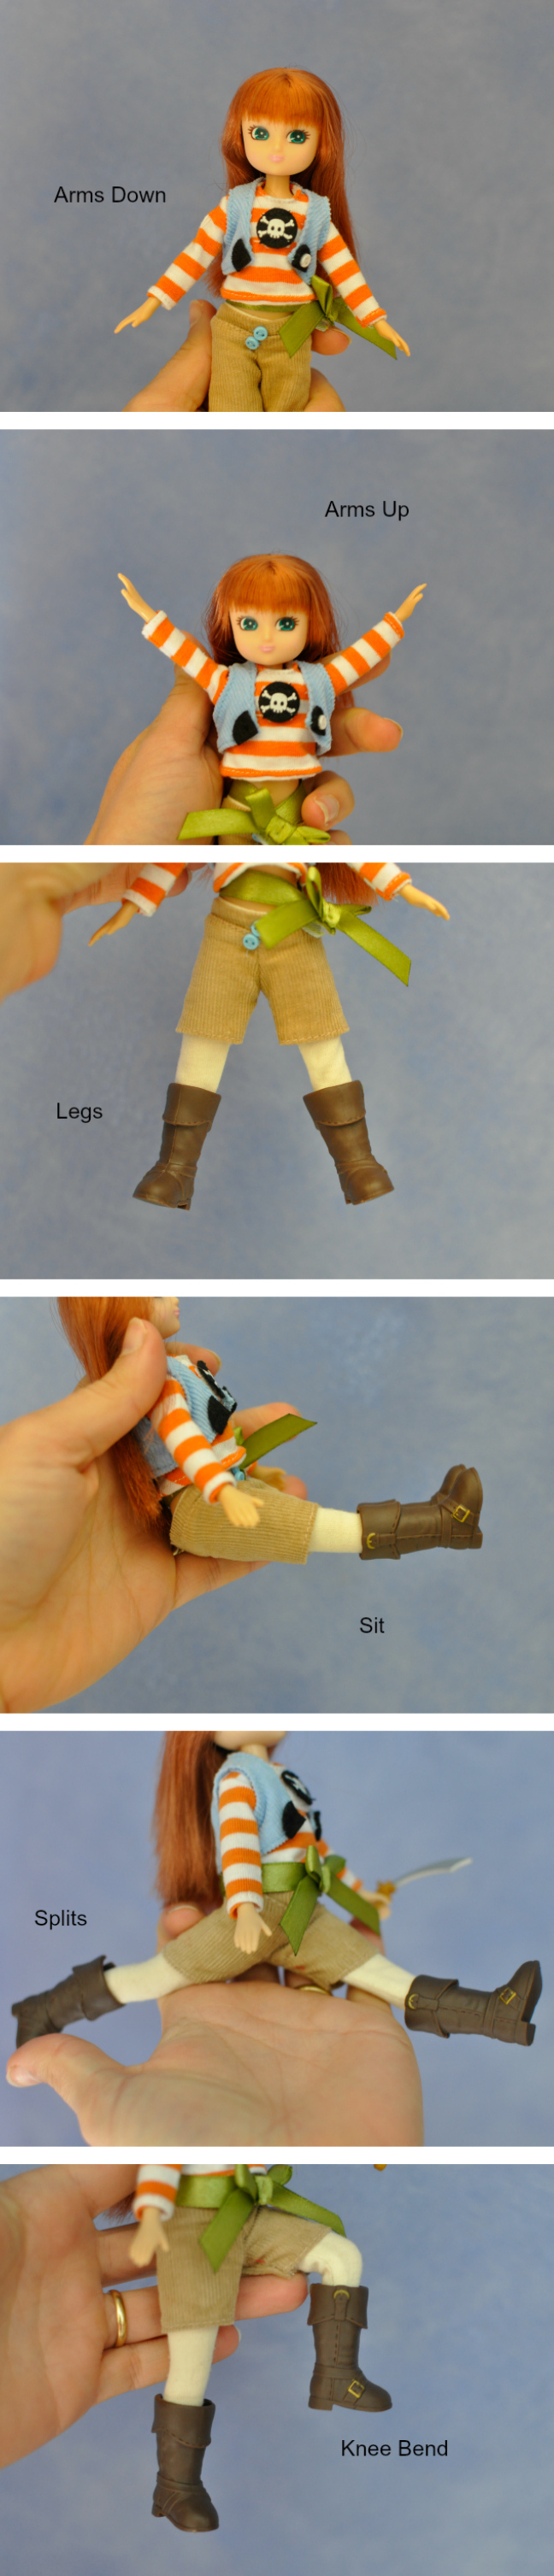 Lottie Doll - Movement and Flexibility